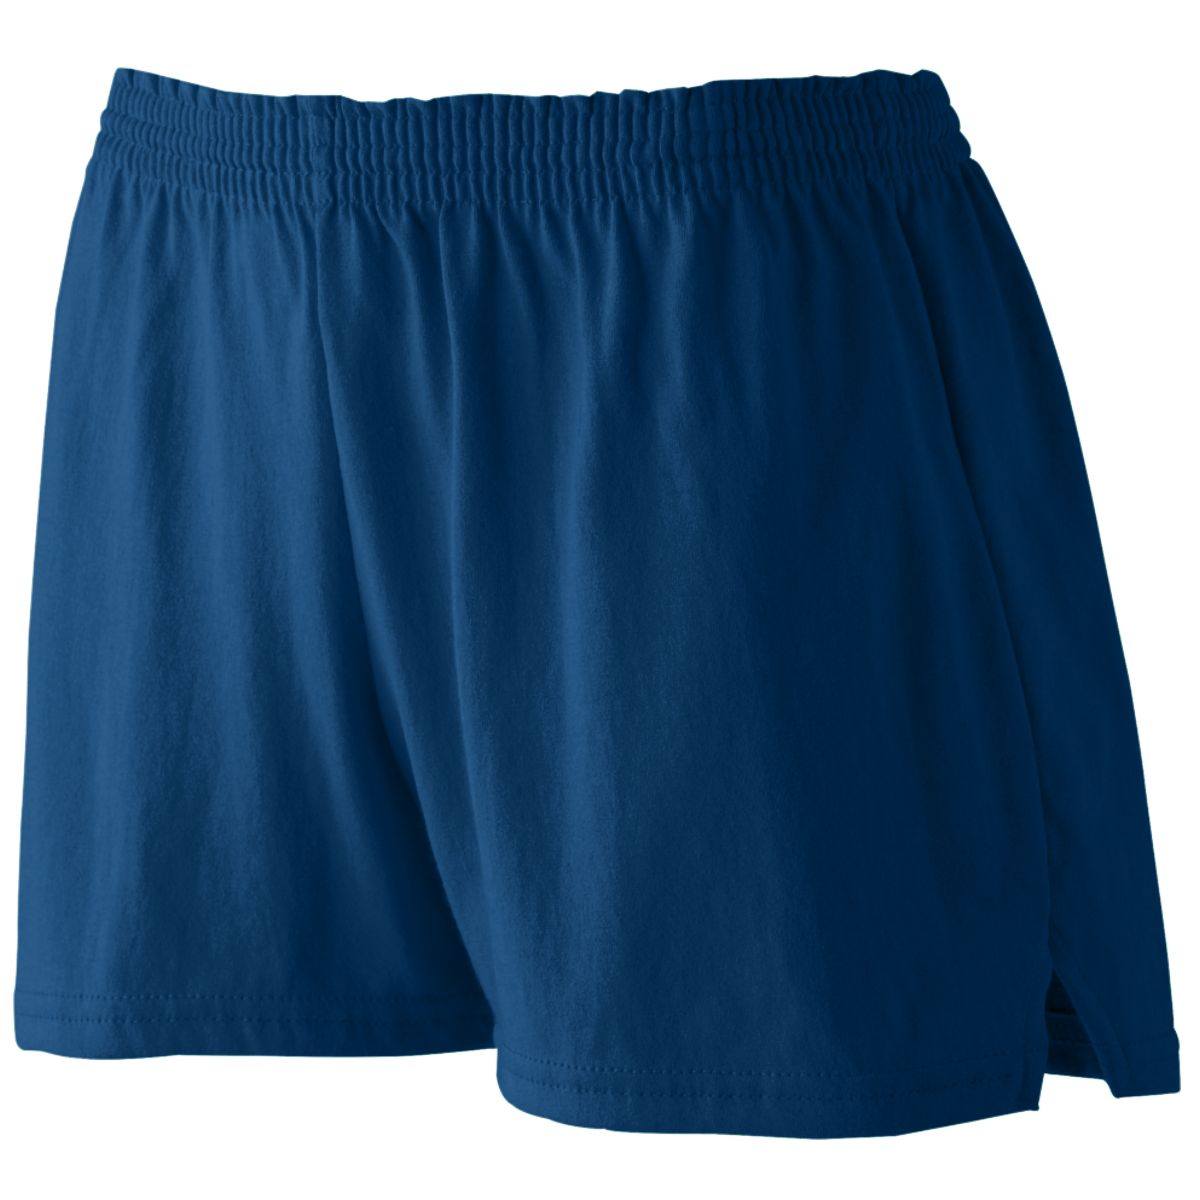 Augusta Lds Jr Ft Tf Jersey Short Navy L - image 1 de 1